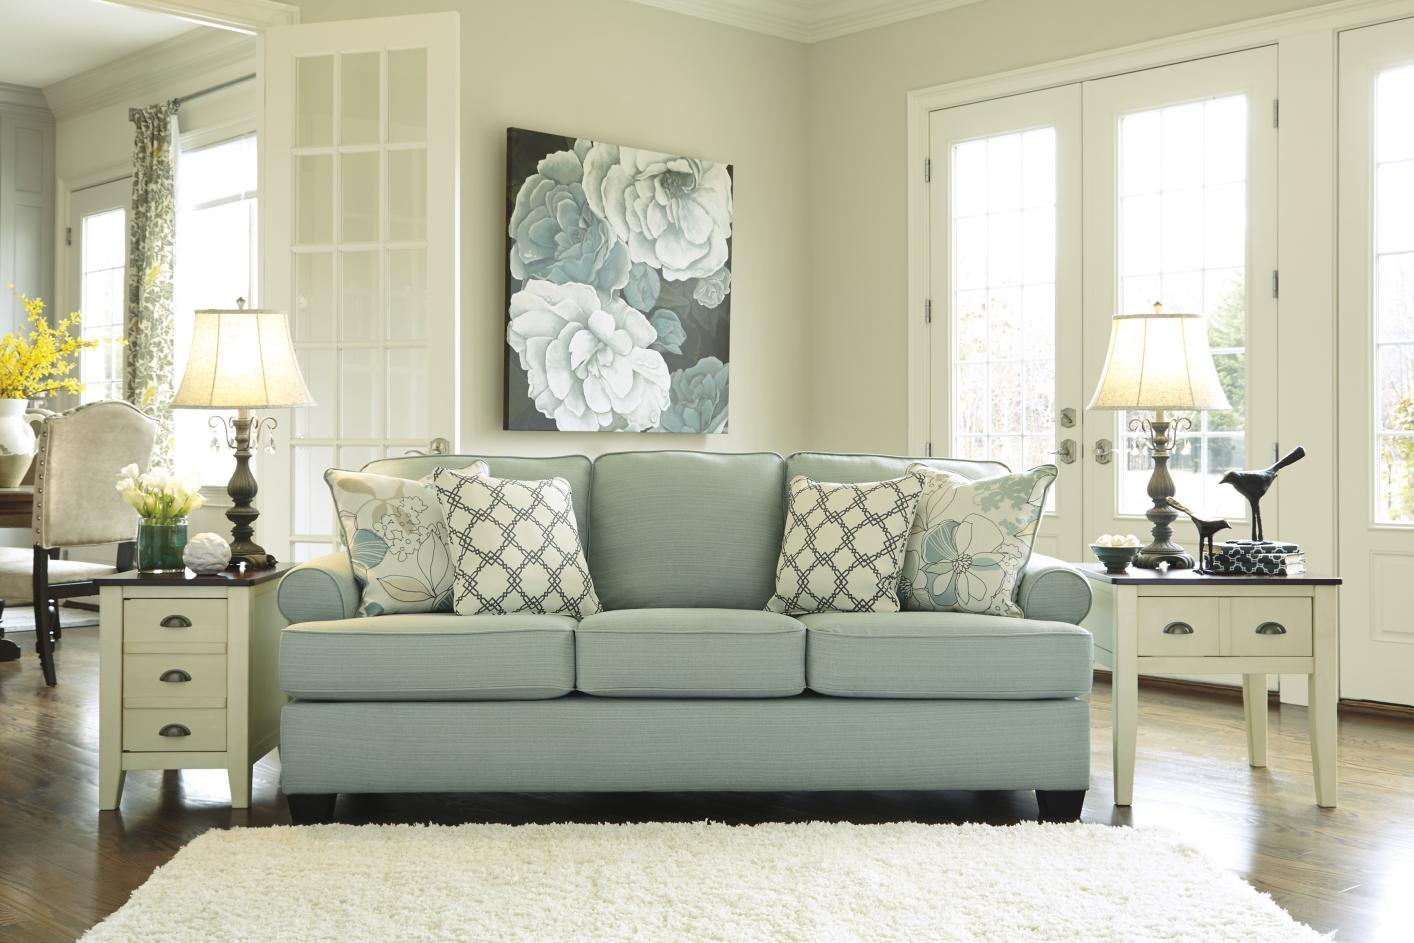 daystar seafoam green fabric sofa - steal-a-sofa furniture outlet